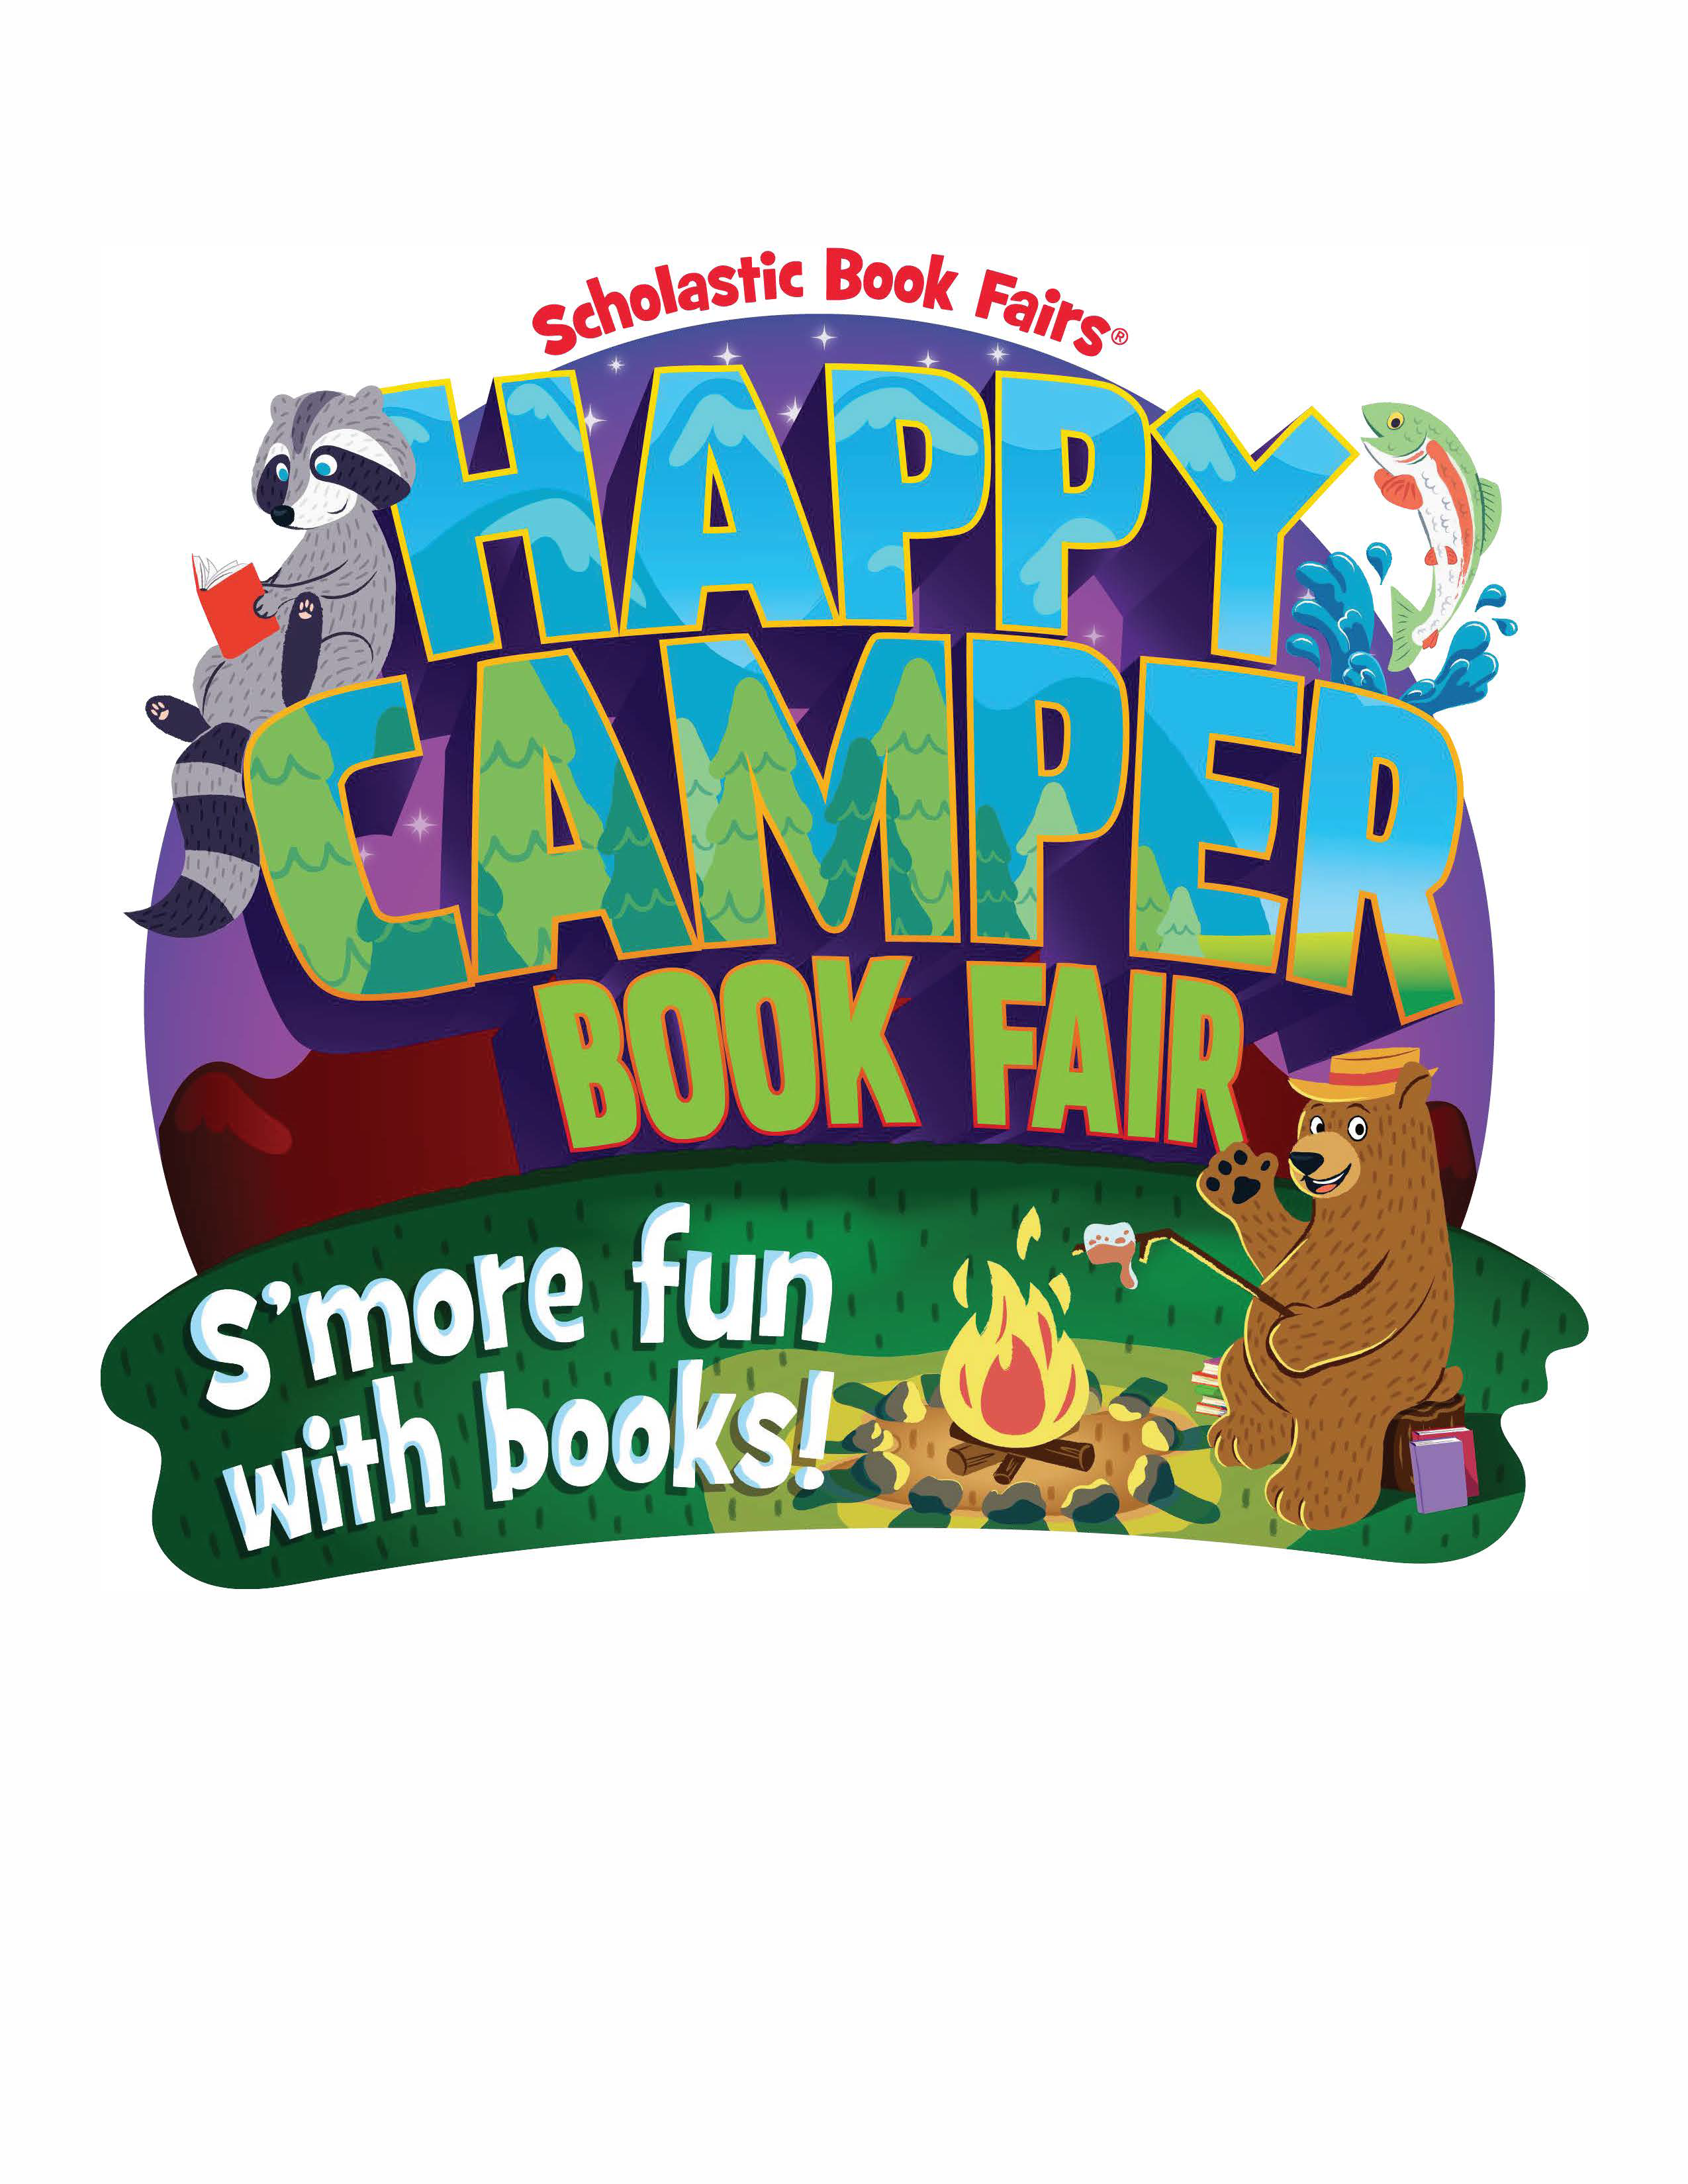 Happy Camper Book Fair Fair Clip Art (2nd Fair of the School Year)